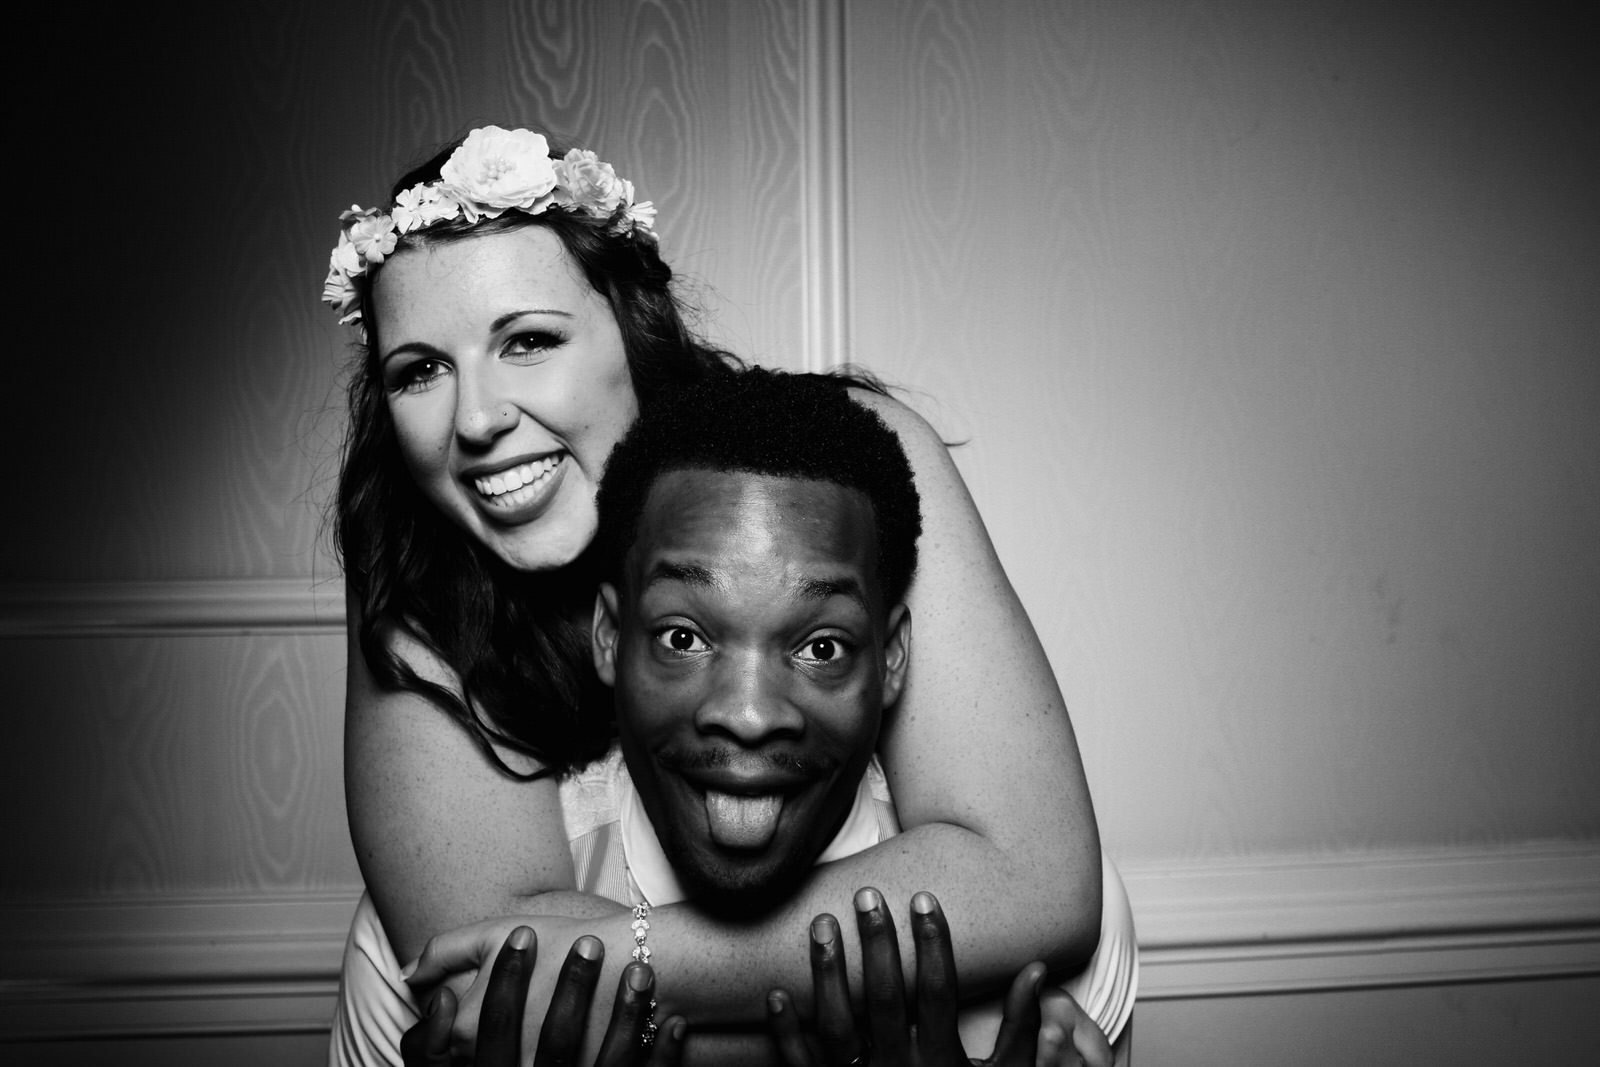 Ashley-Tyrone-Wedding-Photo-Booth-Presidential_Norristown-Wedding-13.jpg